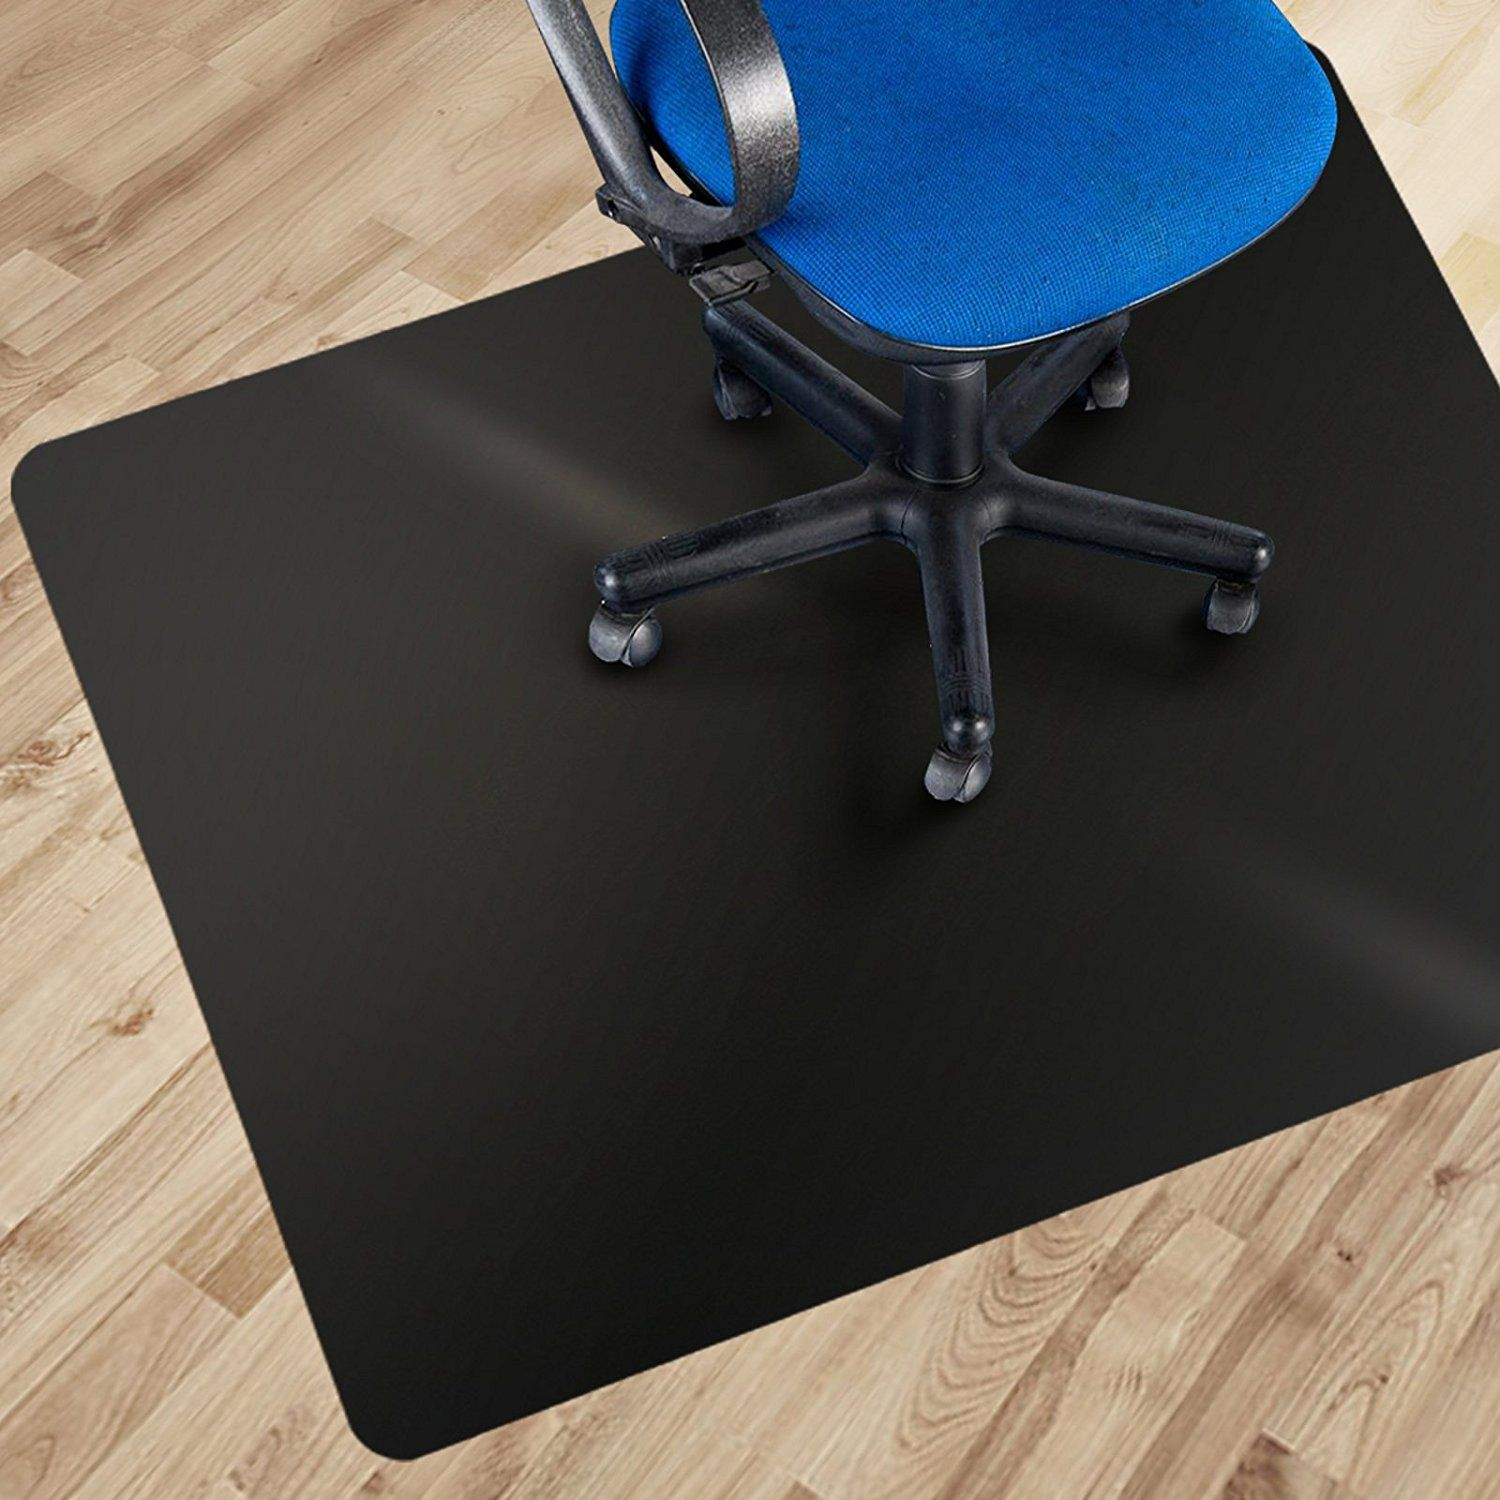 Desk Chair Floor Protector - Desk Wall Art Ideas Check more at //.sewcraftyjenn.com/desk-chair-floor-protector/ & Desk Chair Floor Protector - Desk Wall Art Ideas Check more at http ...